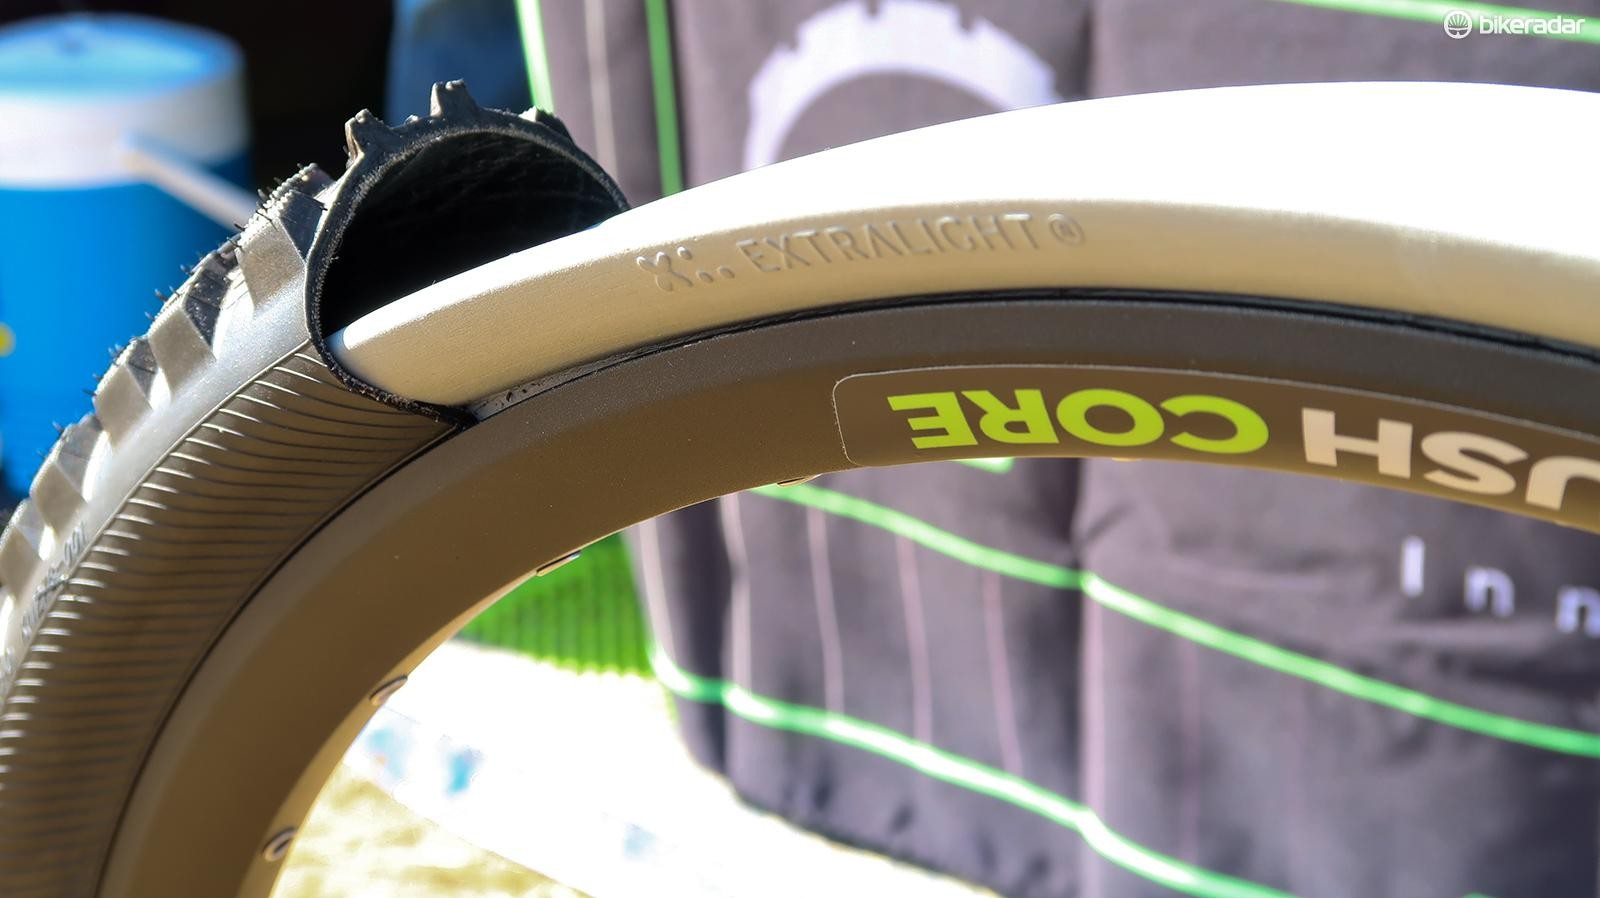 Cush Core's foam inserts protect the rim and tire from impacts, but that's not all, the company claims